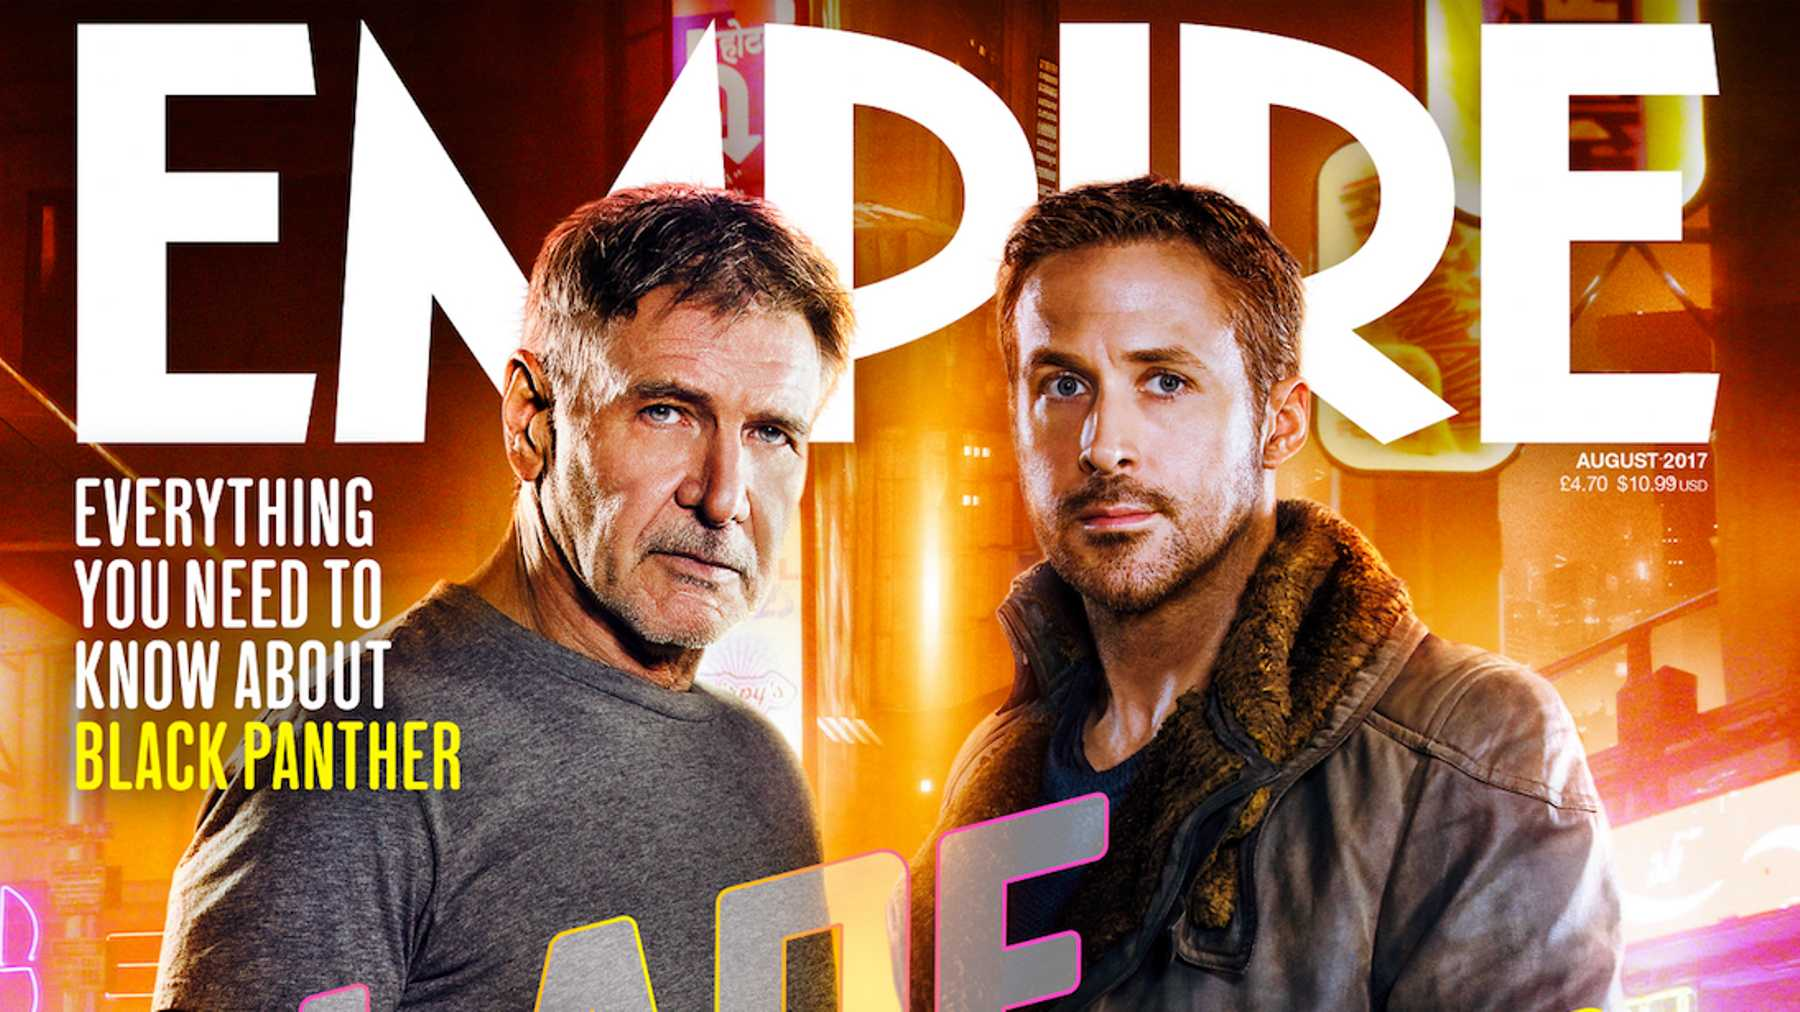 Empire's Exclusive Blade Runner 2049 Cover Revealed | Movies